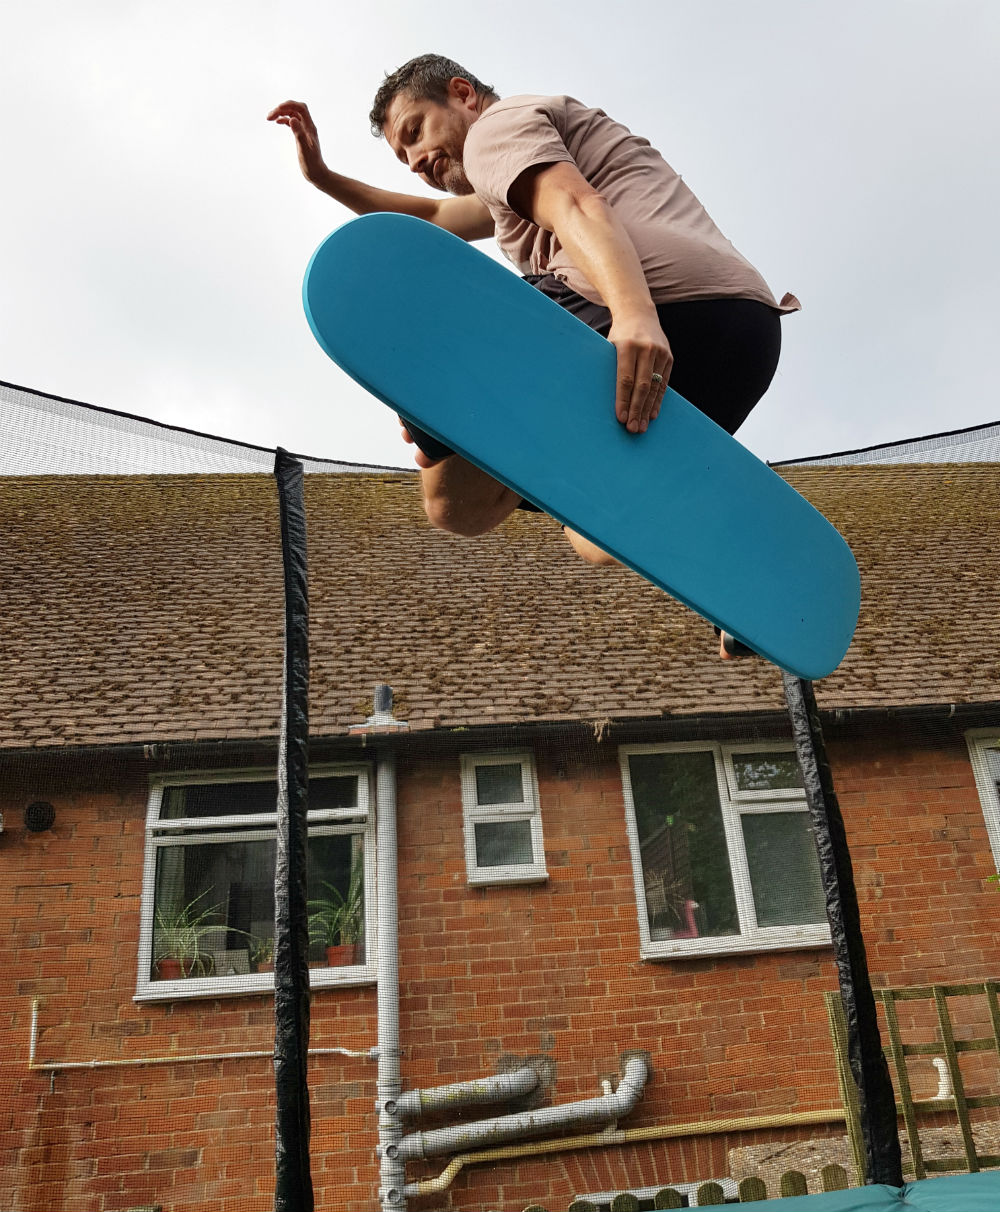 Review of Snowboard Addiction Tramp Board Home snowboard training - Melon grab